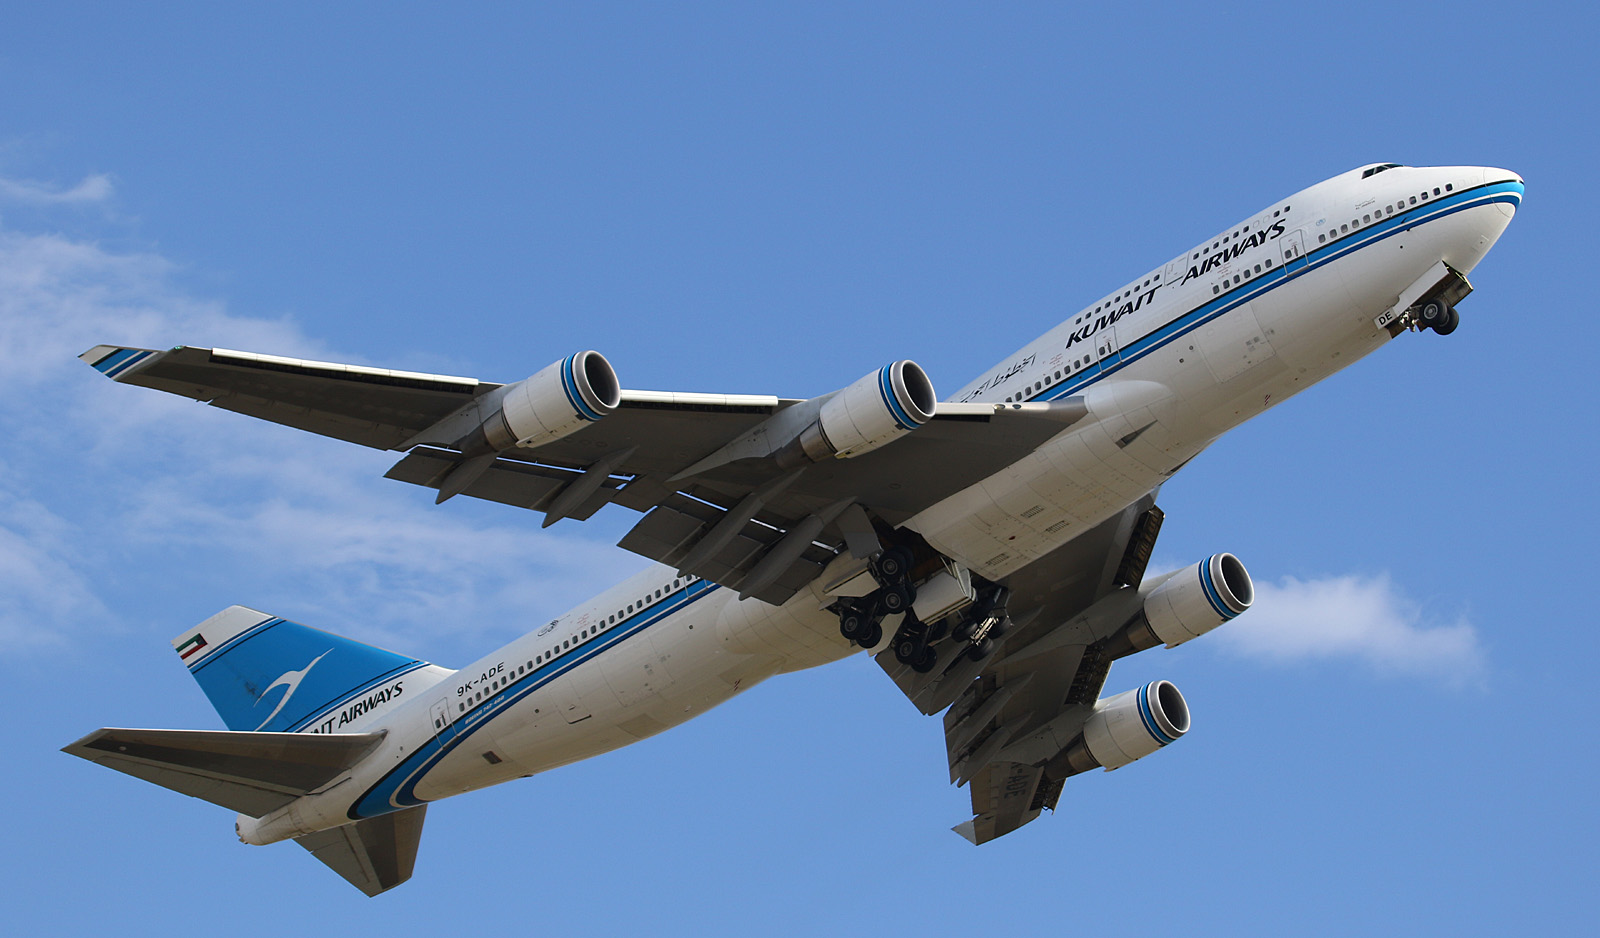 Kuwait Airways 747-400 at Frankfurt Airport